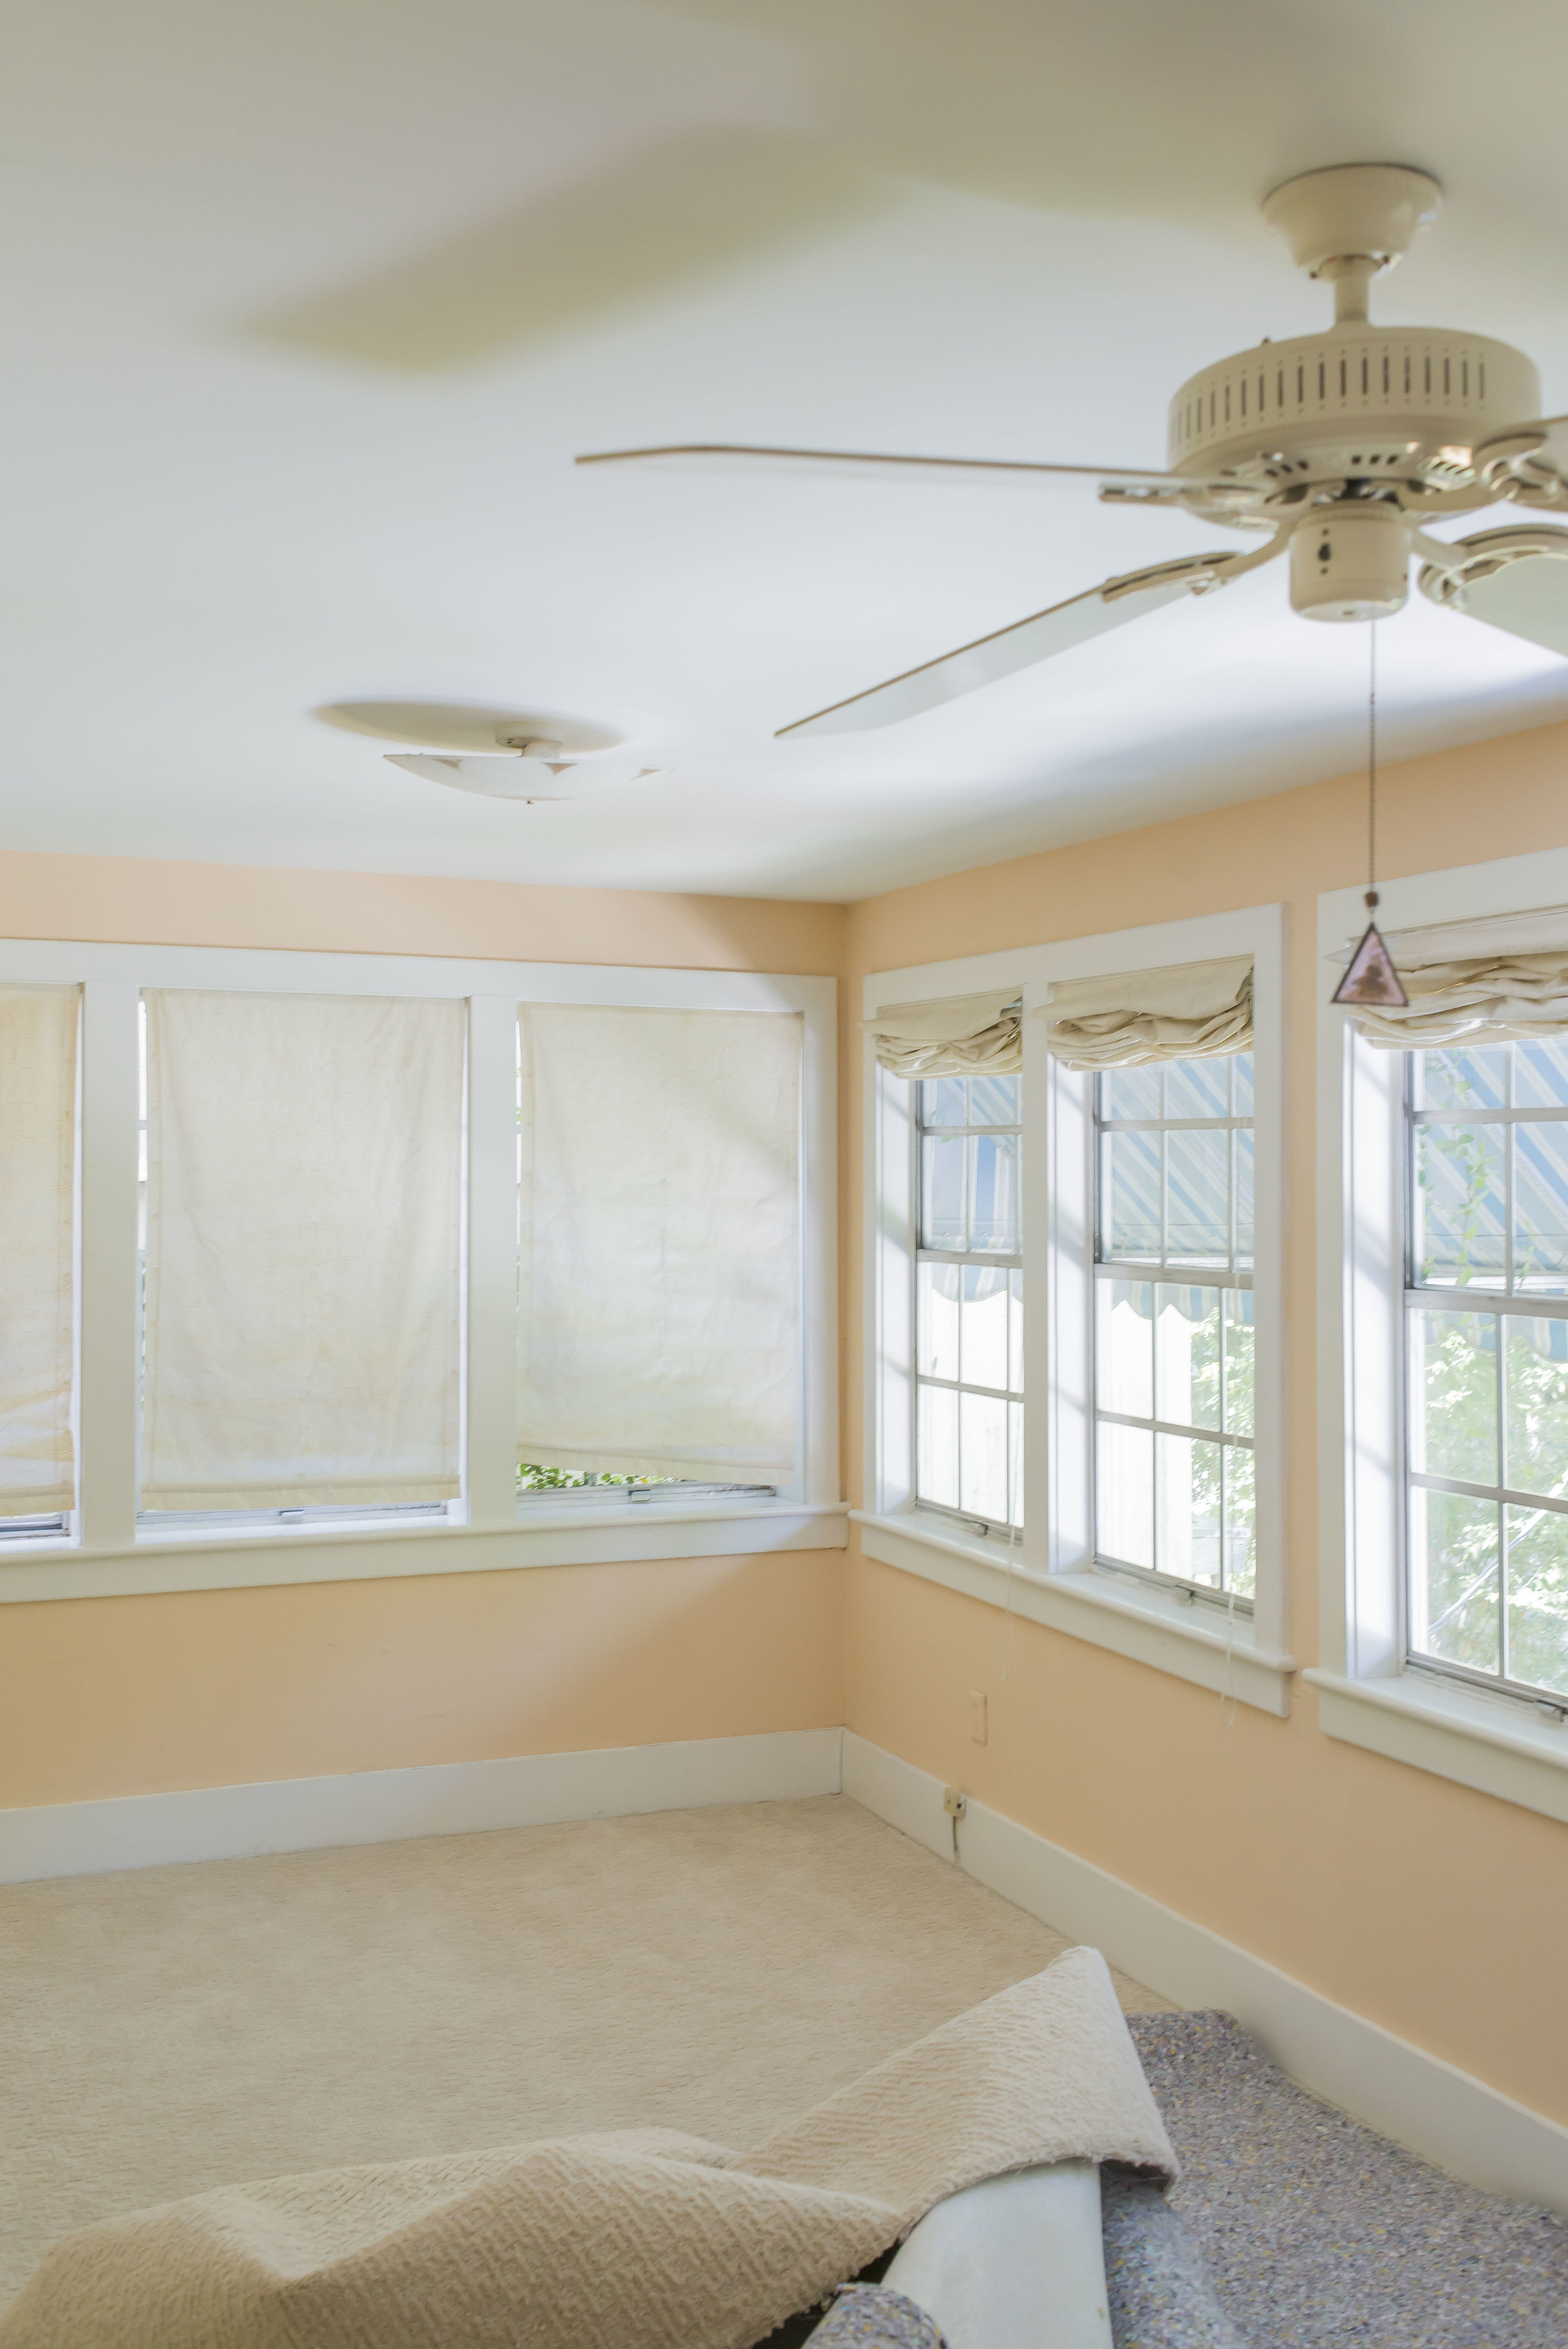 The back bedroom, once an artist's studio, was in pretty decent shape, aside from needing new floors and windows, fresh paint, crown, and new light fixtures.